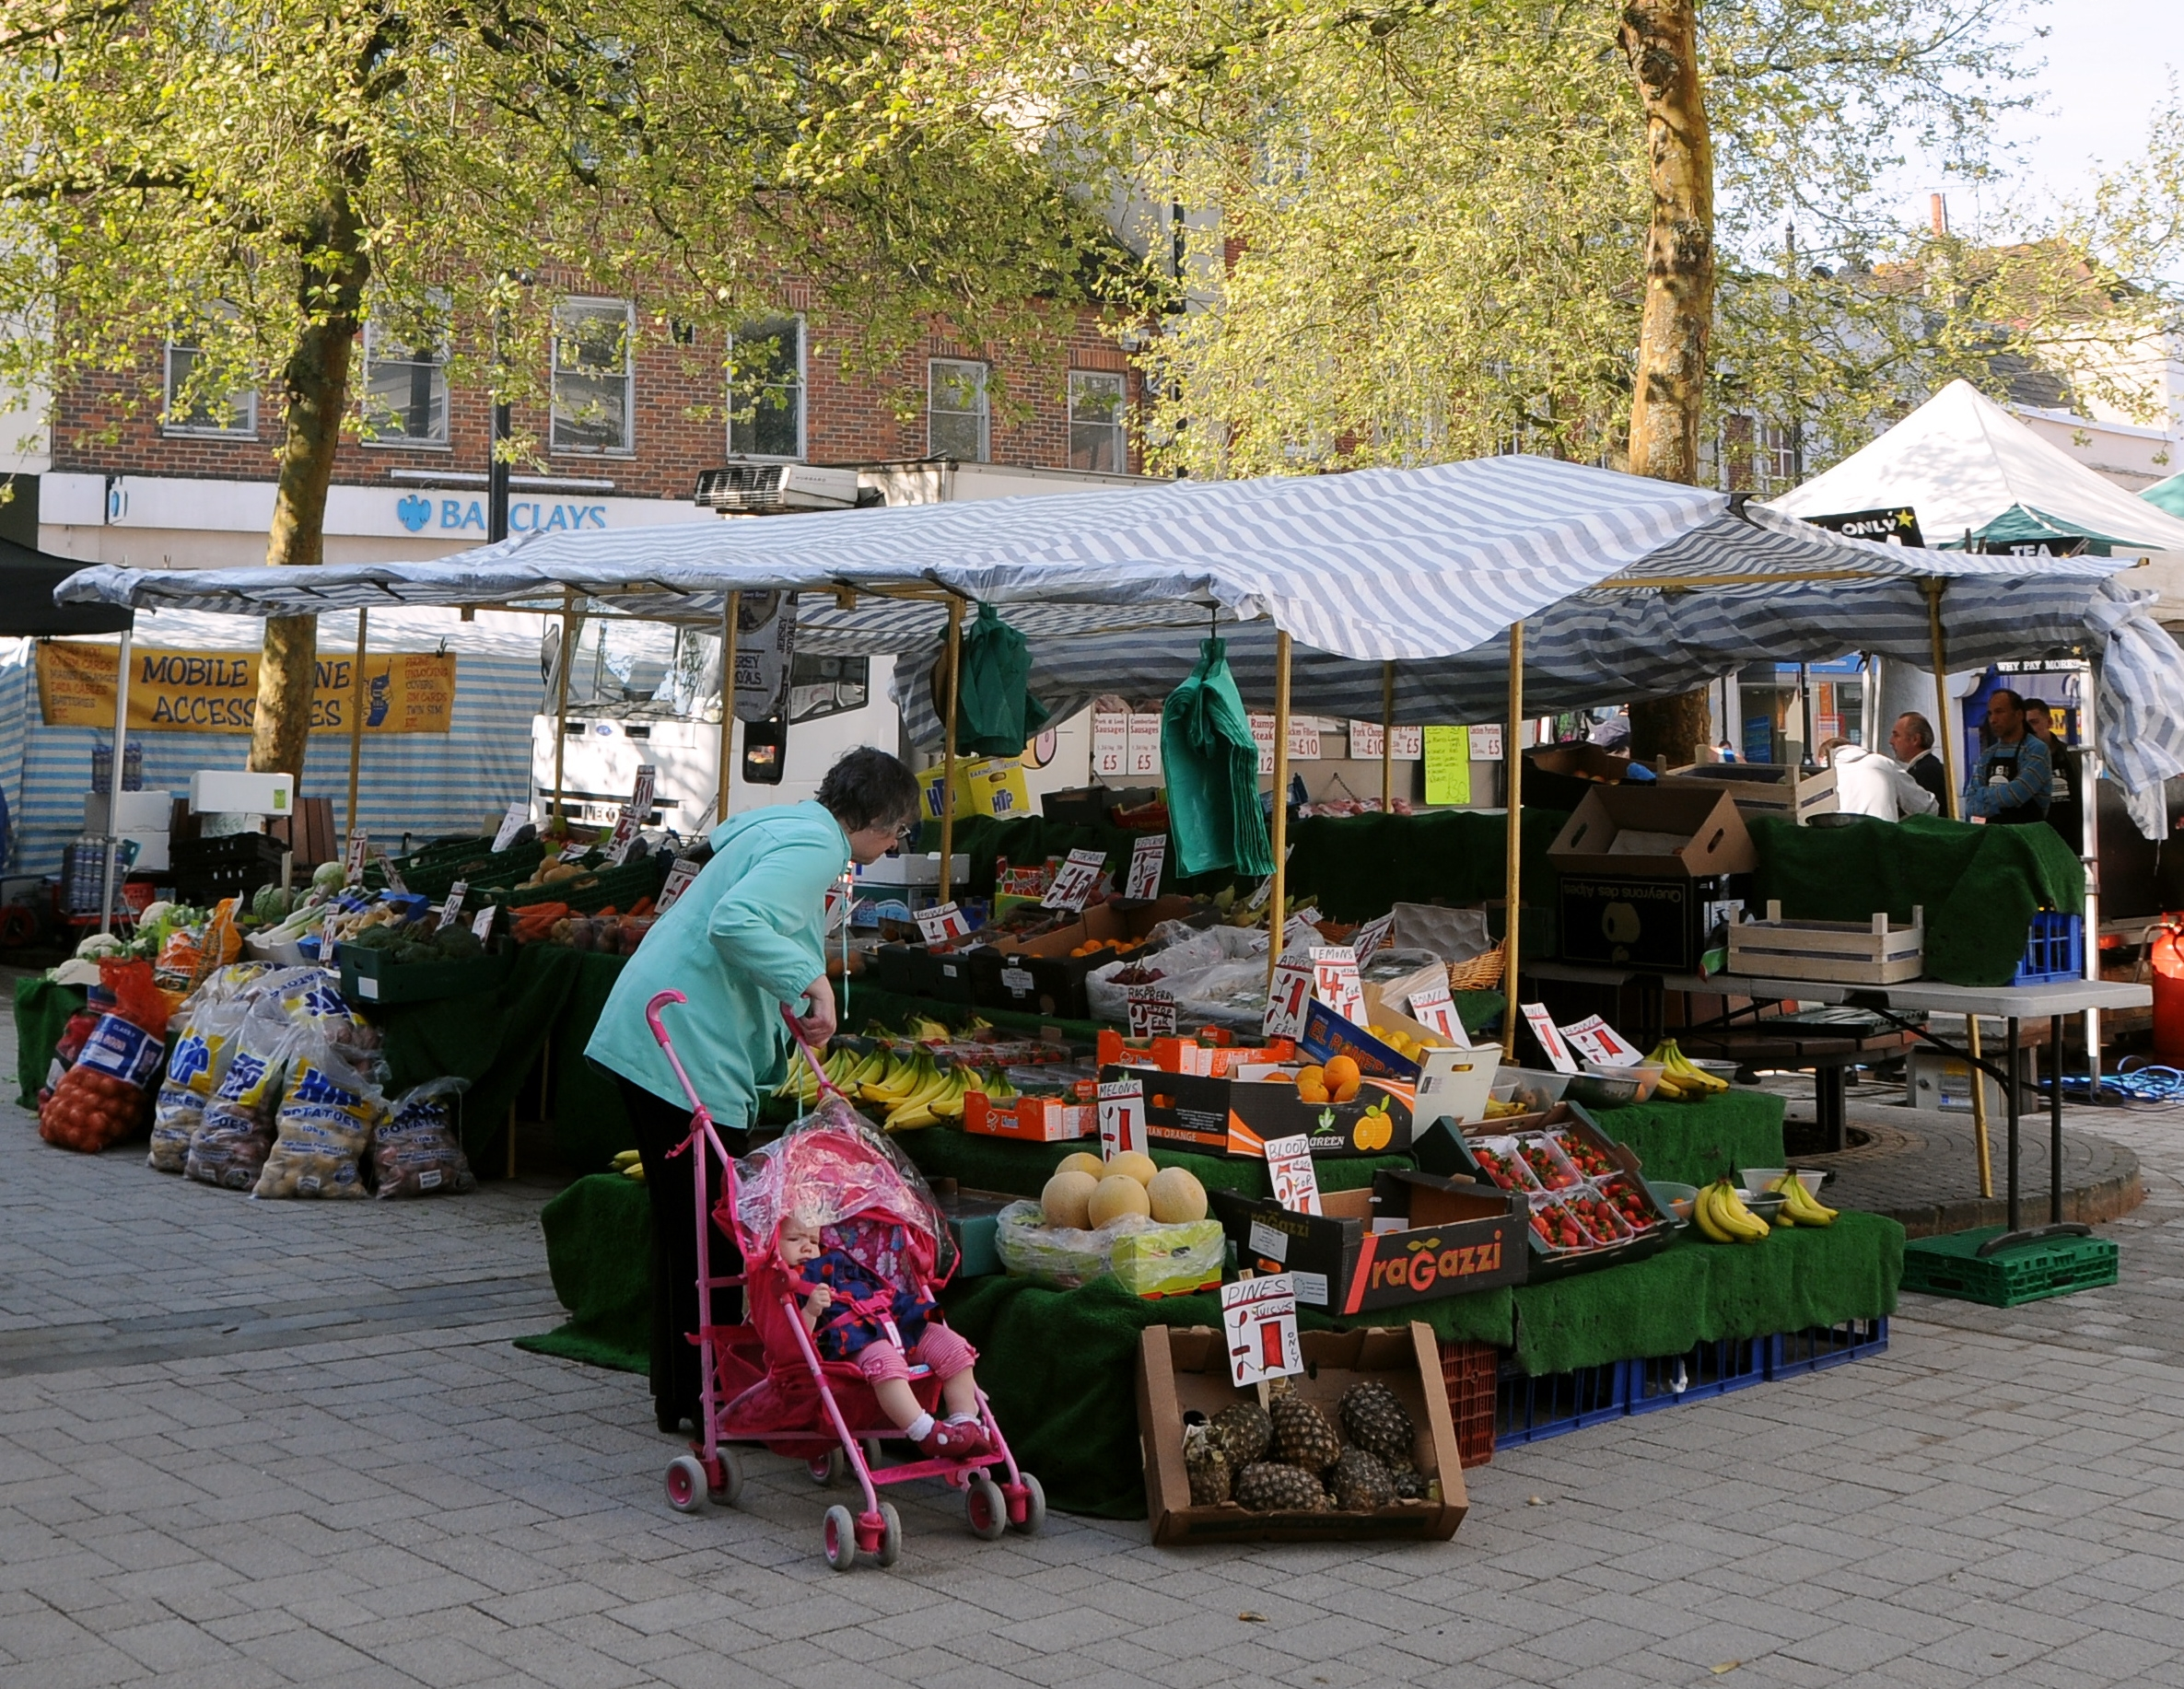 Basingstoke market has returned to its traditional place at the Top of the Town